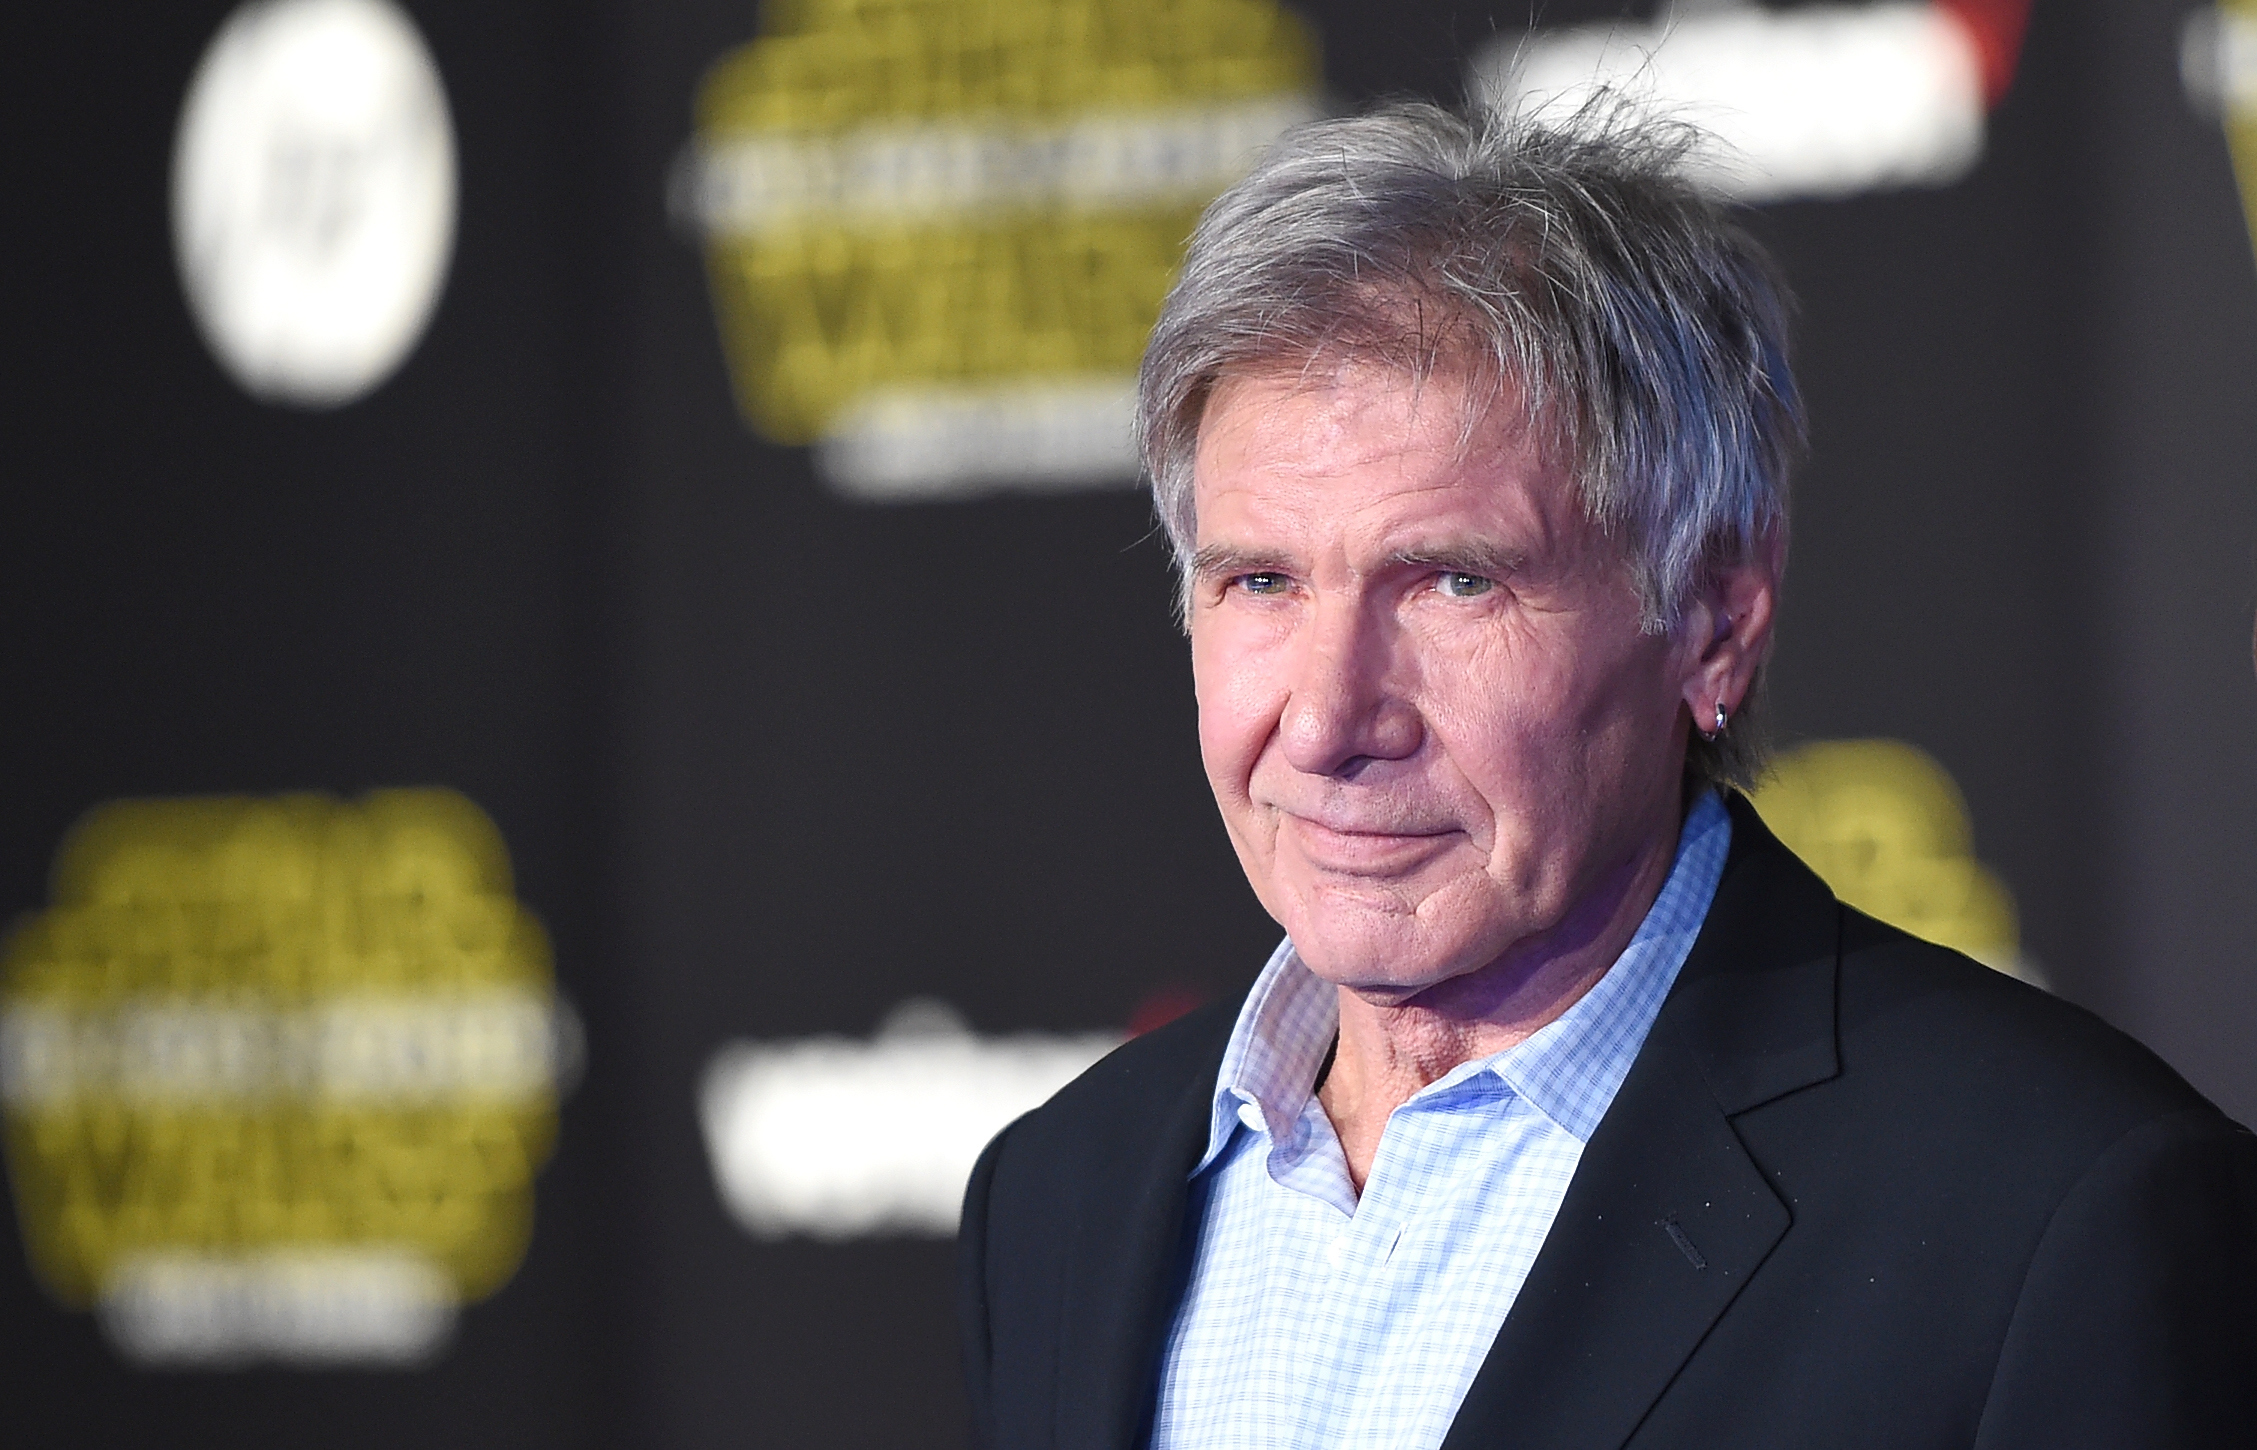 Harrison Ford 'could have been killed' in accident on the set of Star Wars: The Force Awakens